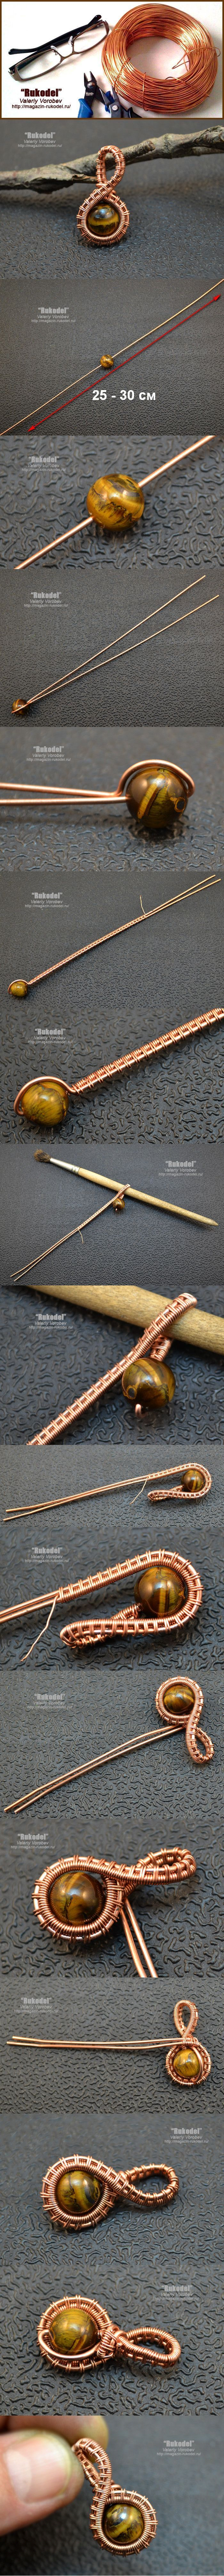 Wire Wrap. Подвеска из проволоки - фото. | Рукодел  Wire Wrap Tutorial includes easy to follow pictures and a video that can be visually understood.